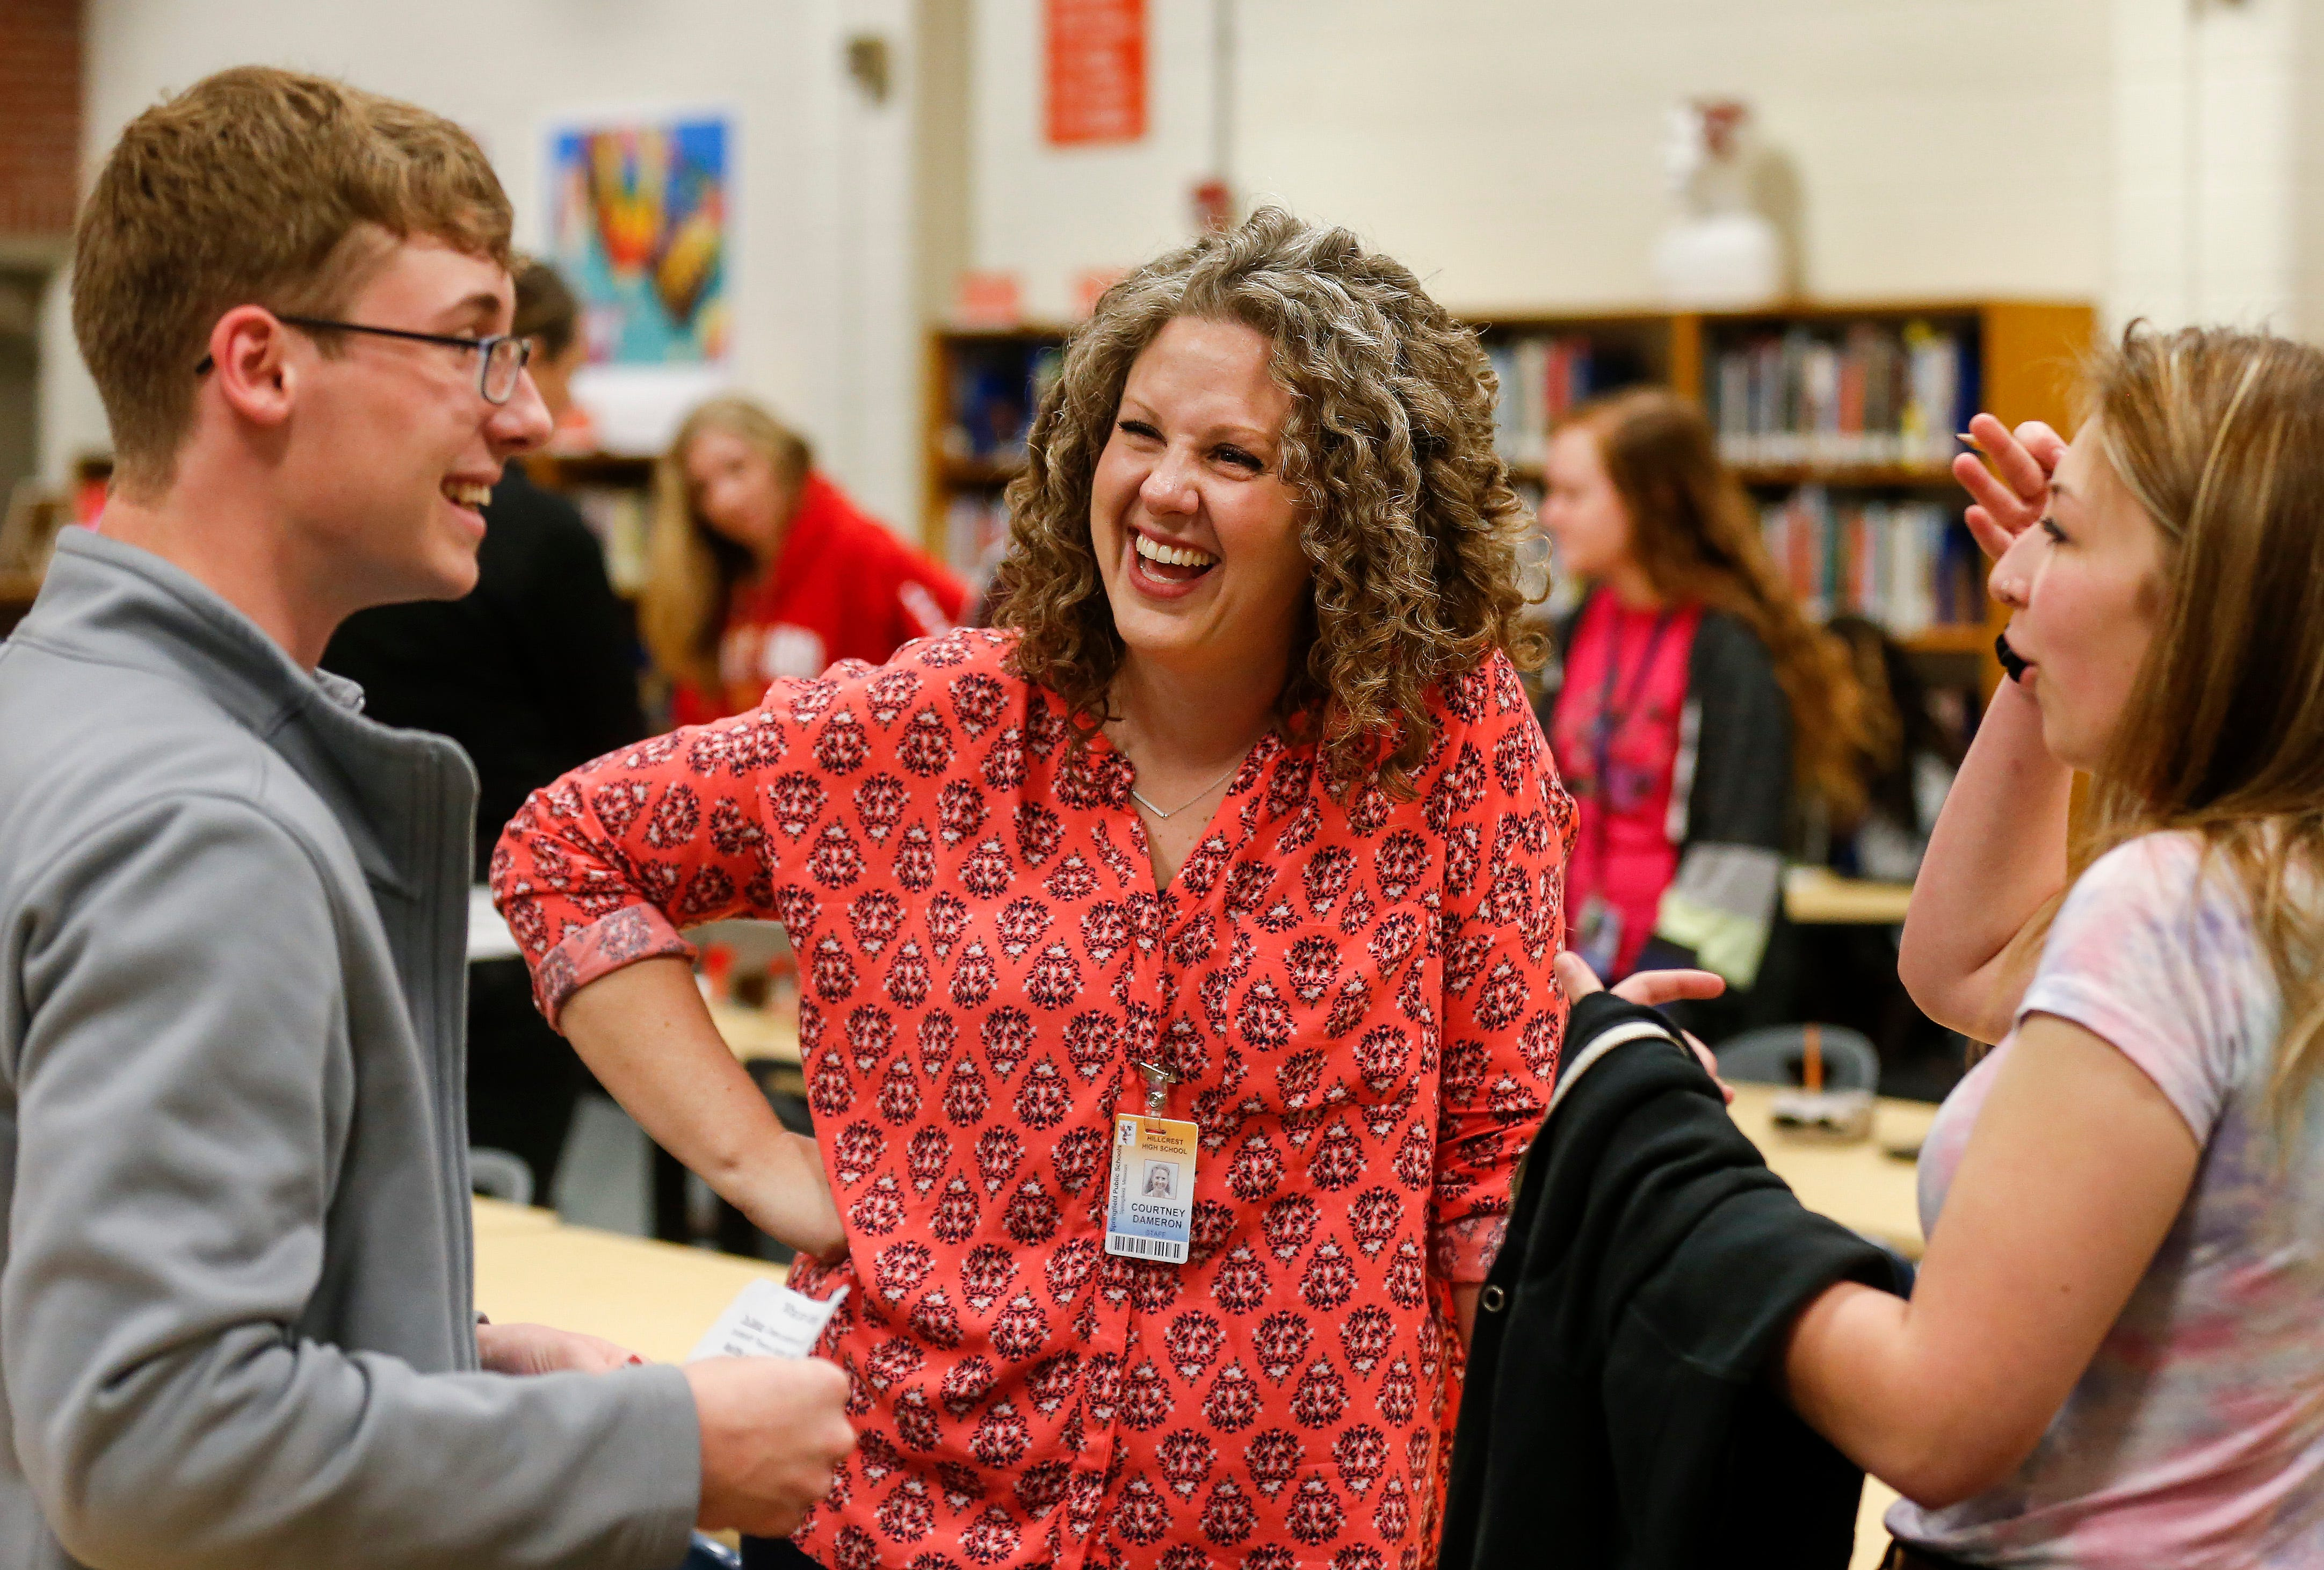 Courtney Dameron, center, a teacher at Hillcrest High School, laughs with students on Thursday, April 18, 2019. Dameron was named Springfield Public Schools' Teacher of the Year for the 2019-20 school year.